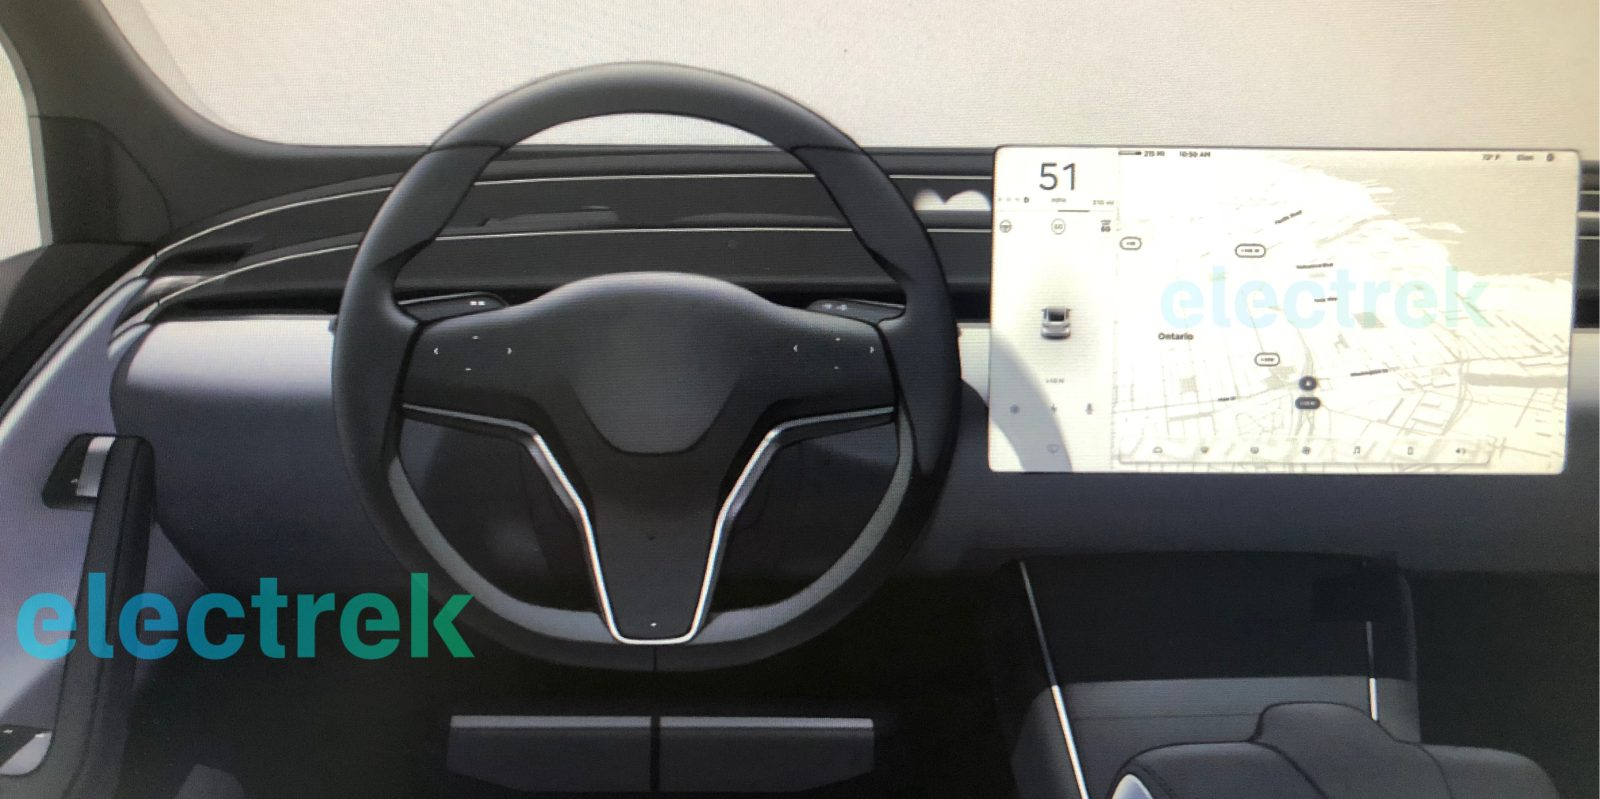 small resolution of exclusive first look at tesla model s and model x interior refresh going spartan like model 3